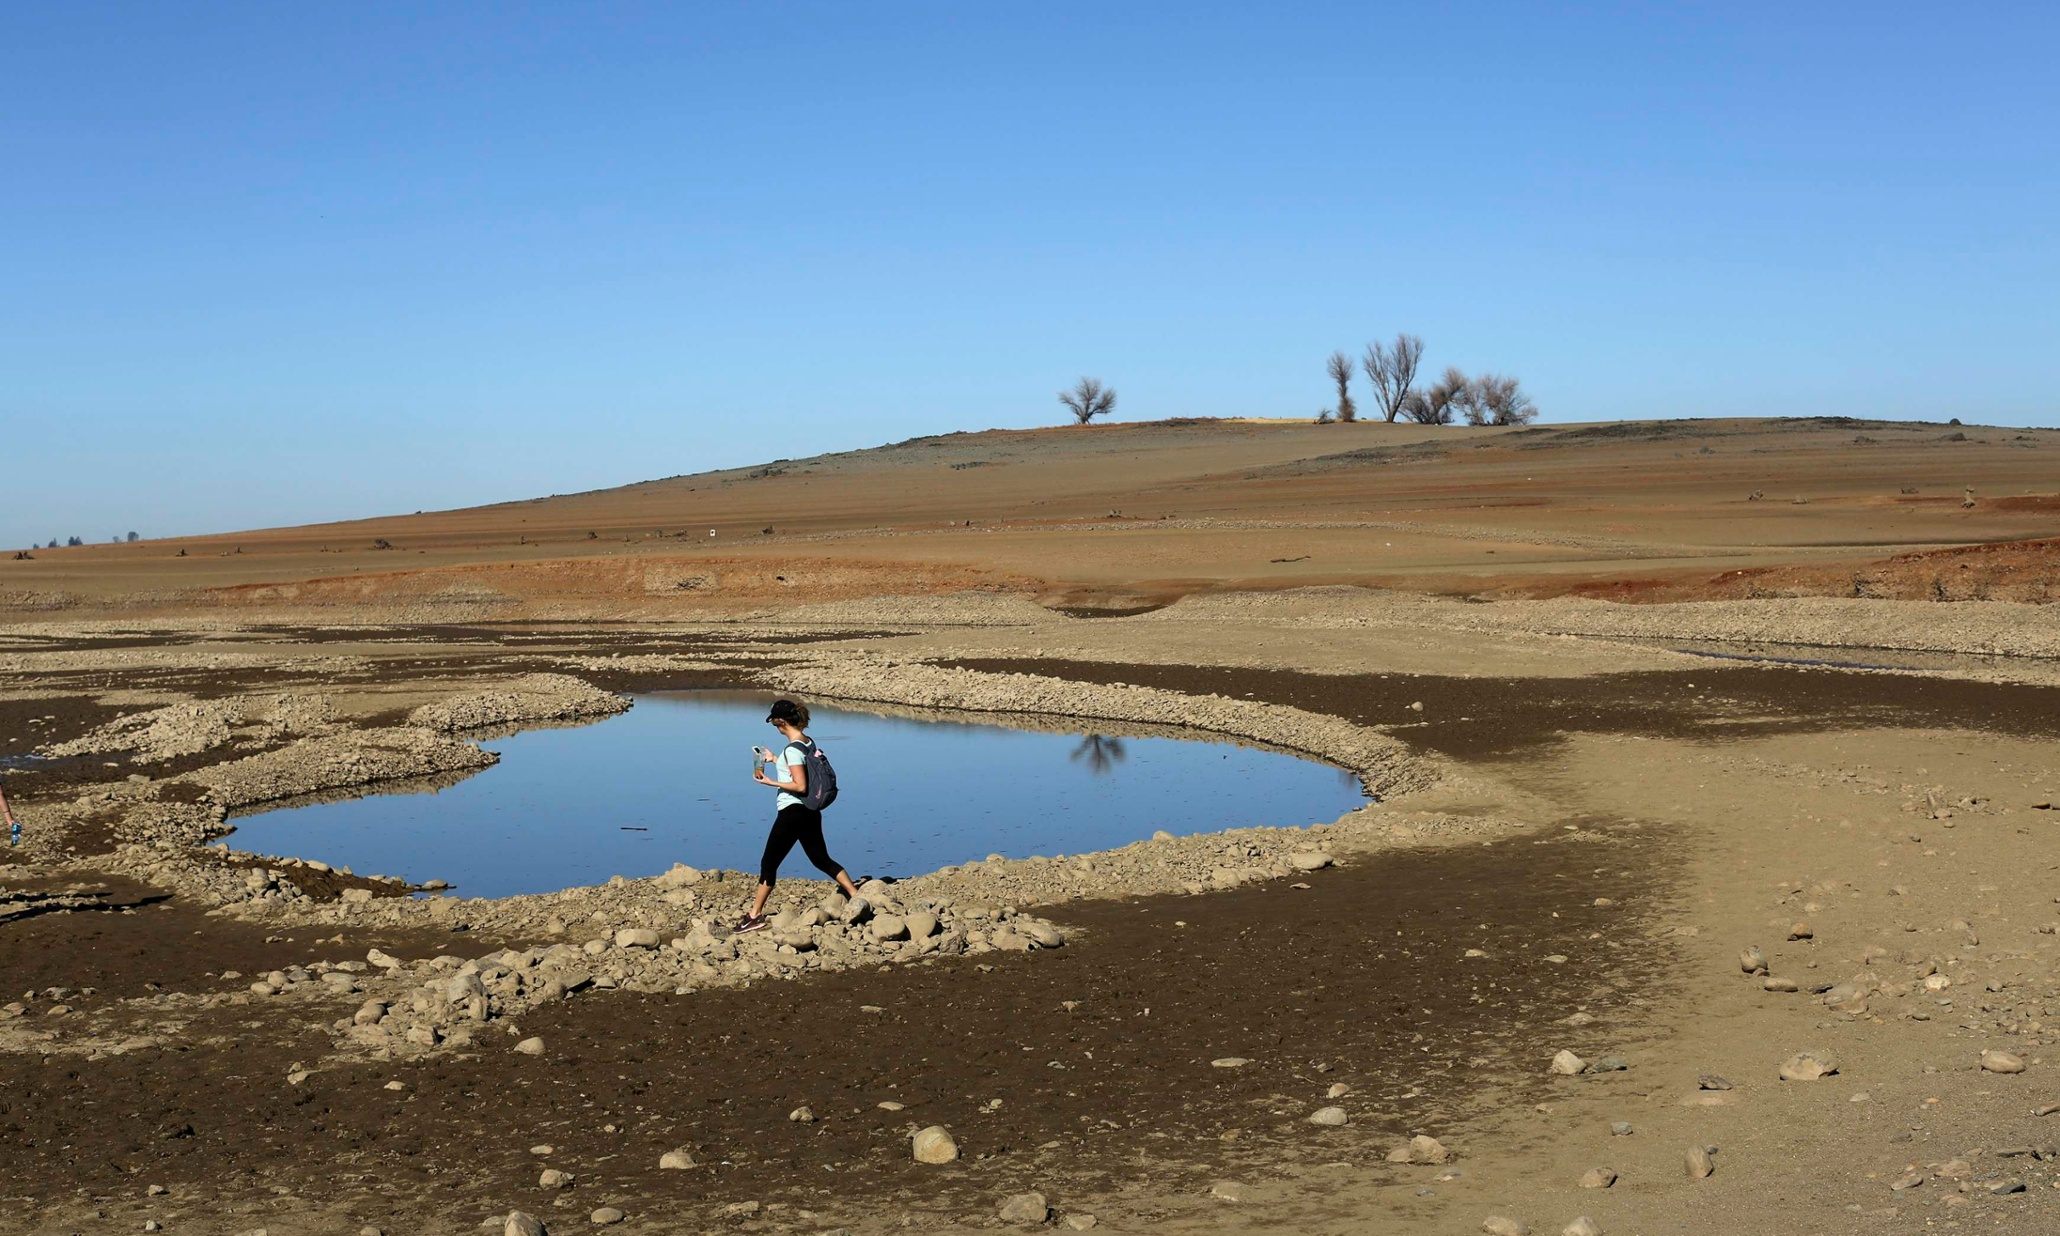 Drought-stricken California only has one year of water left, Nasa scientist warns